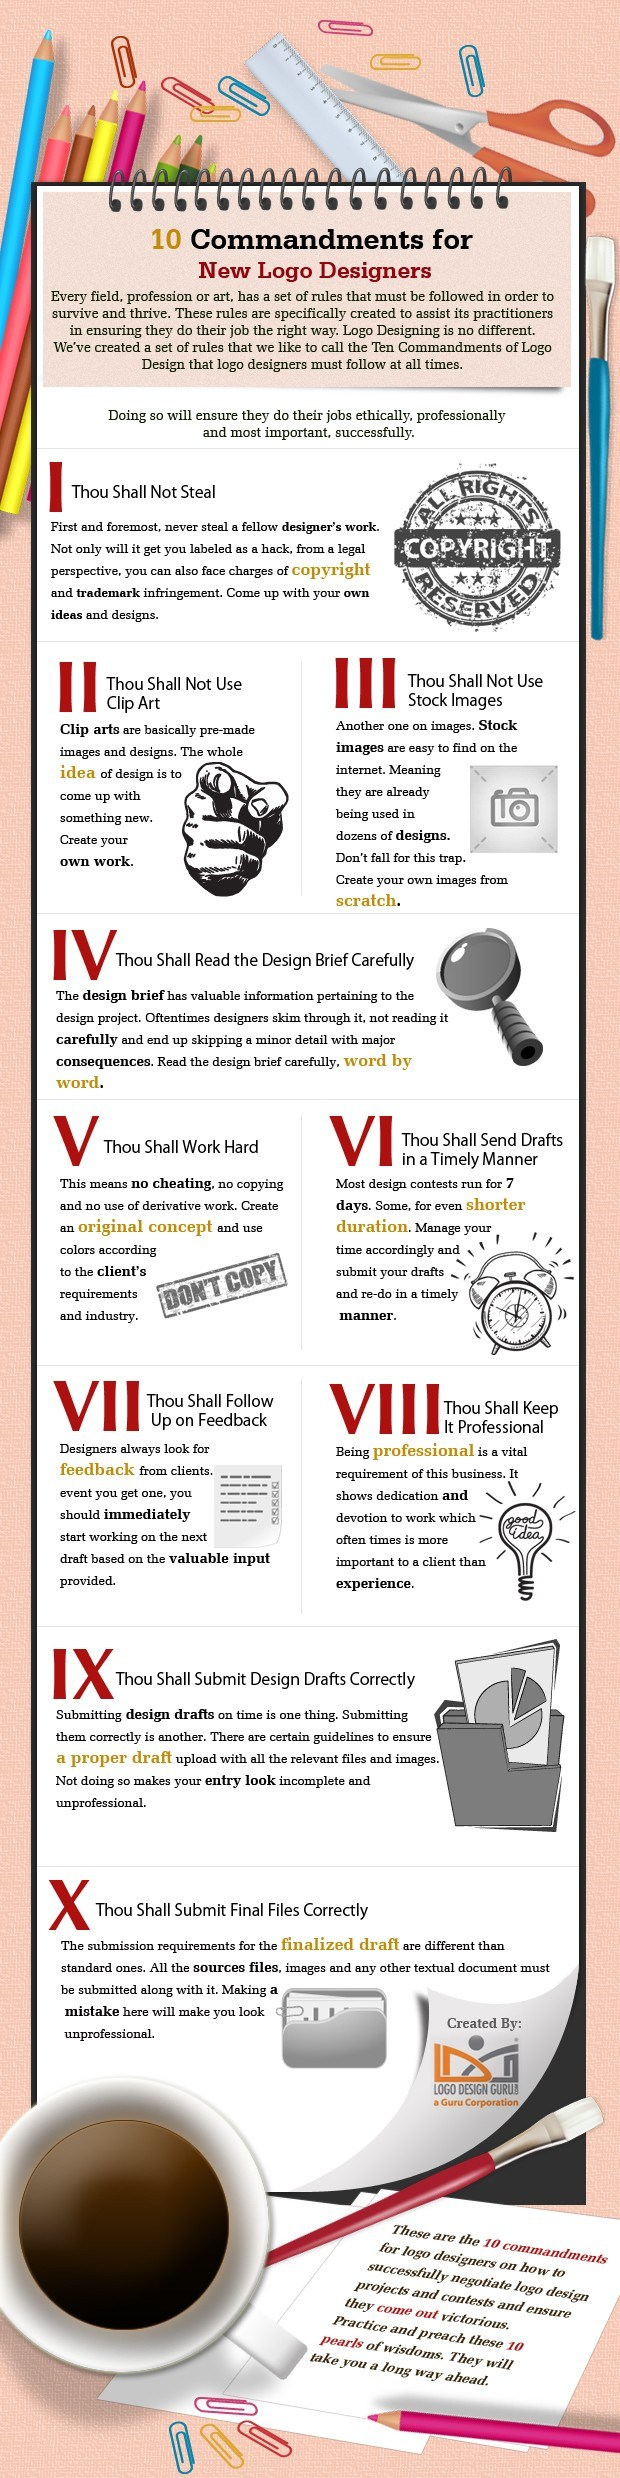 10 Commandments for new logo designers